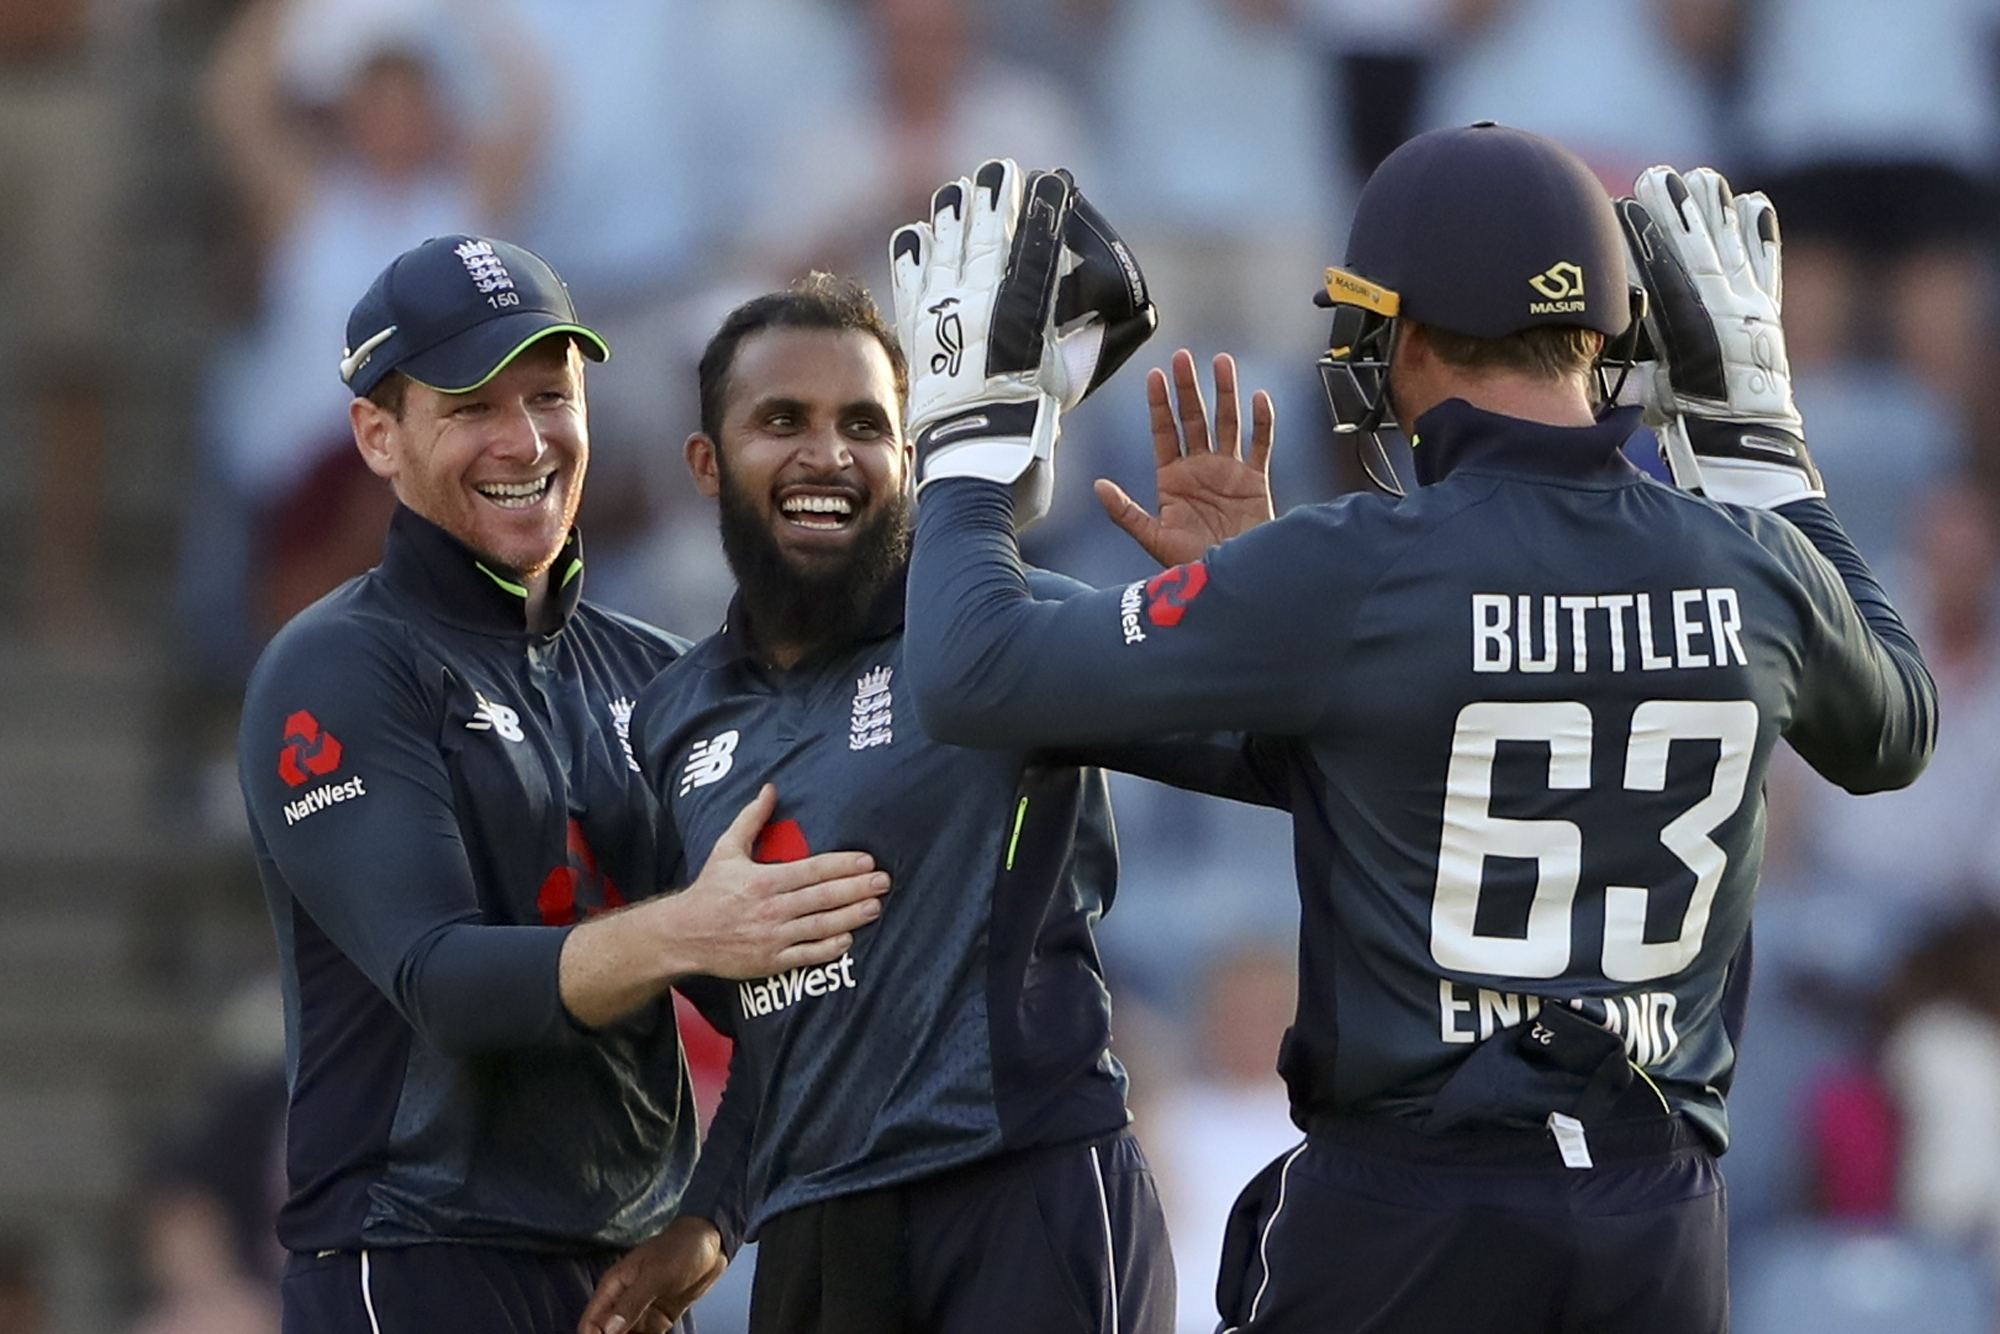 Recent Match Report - West Indies vs England 4th ODI 2019